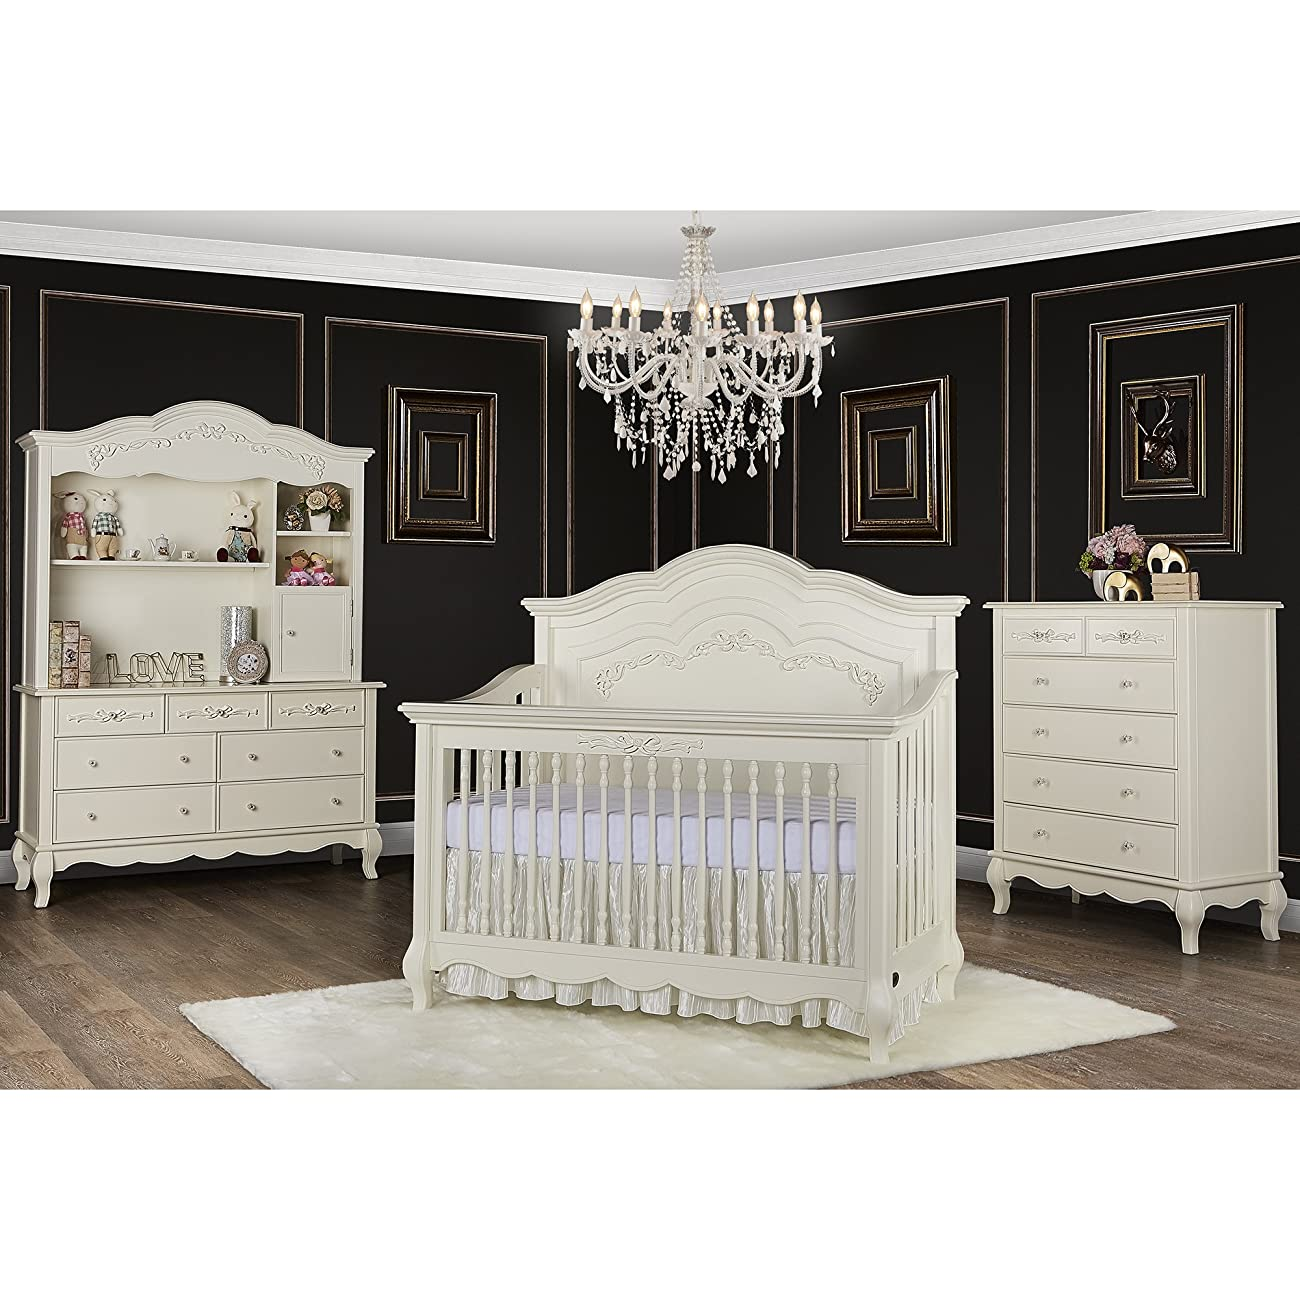 Evolur Aurora 5-in-1 Convertible Crib, Ivory Lace 1